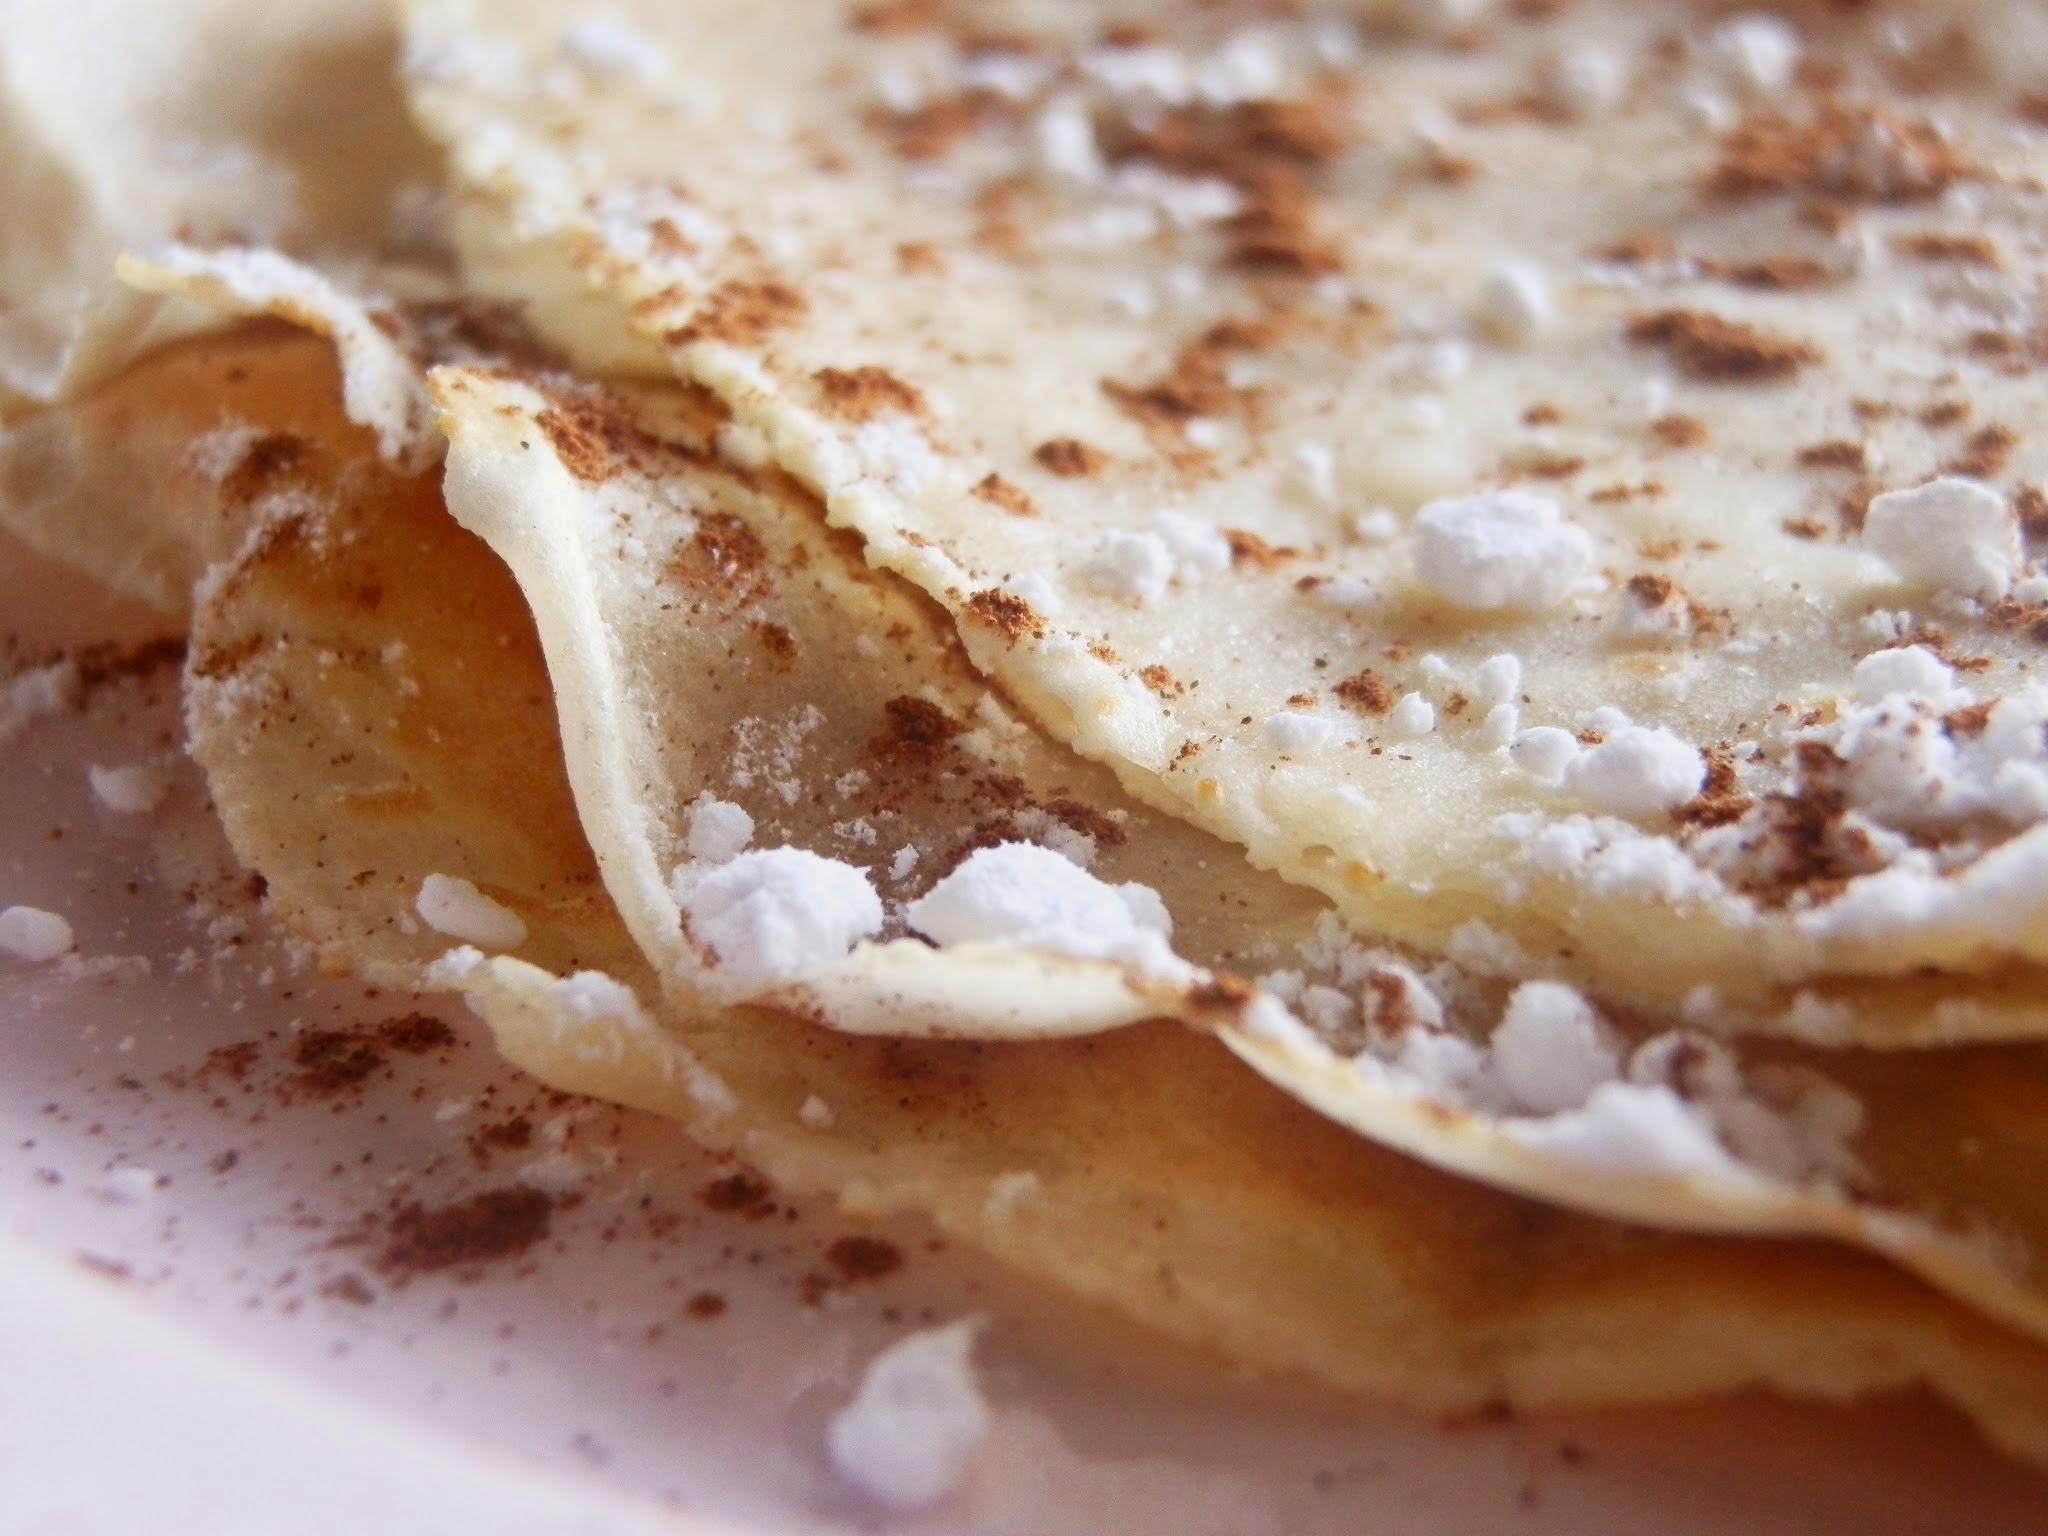 Back to the basics #2 - Crepes